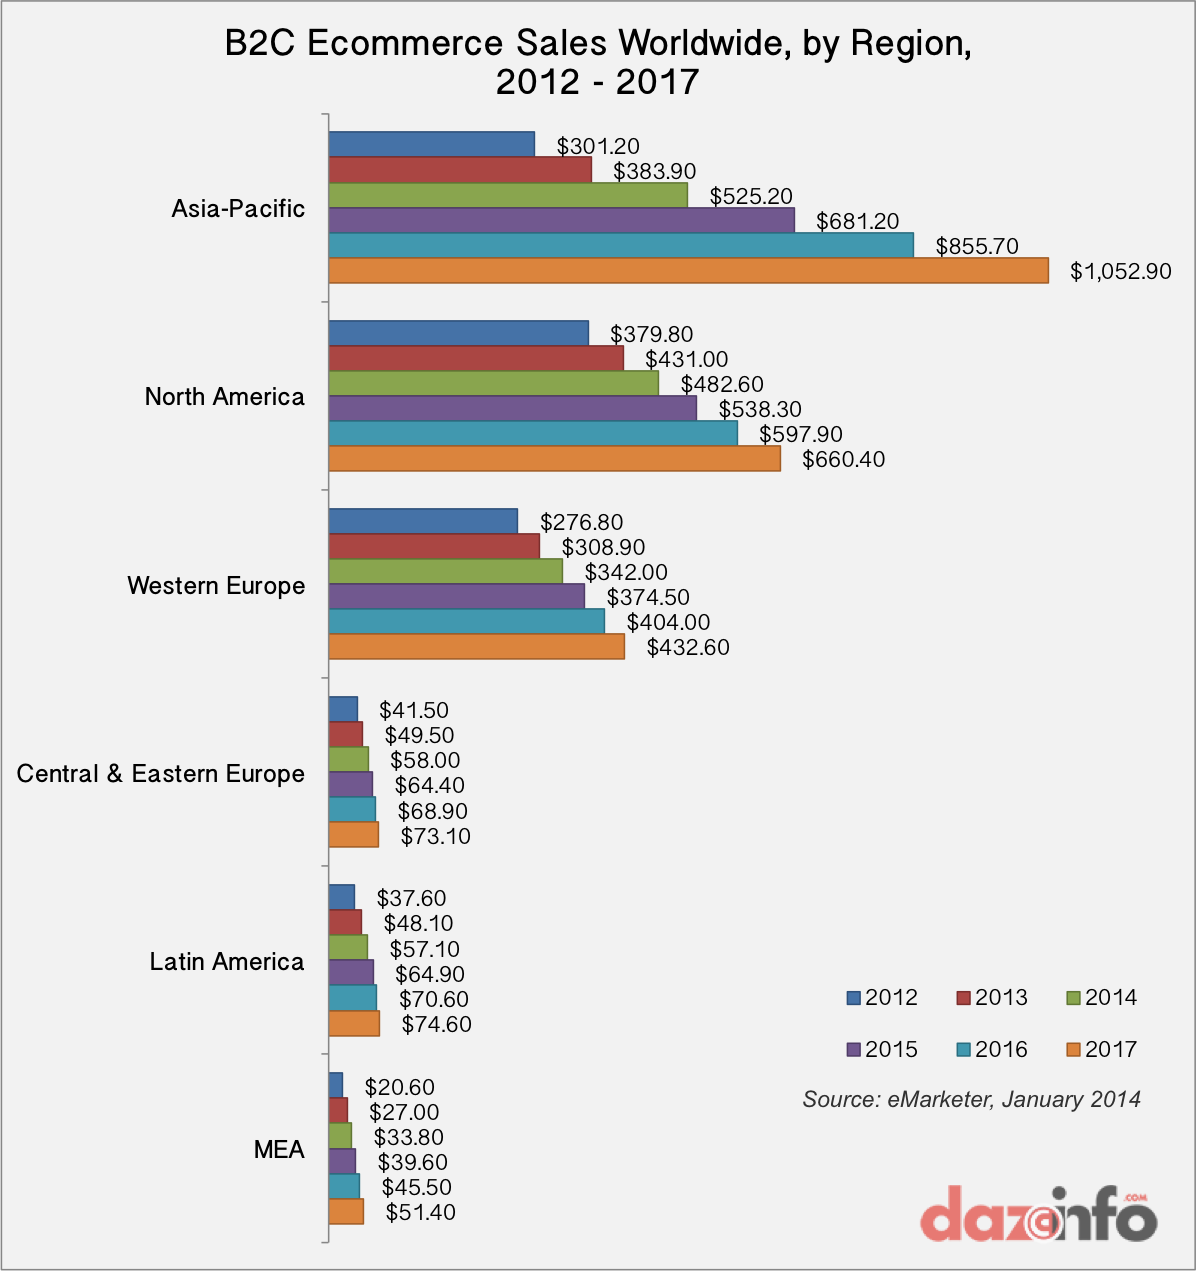 B2C Ecommerce sales by region 2012 - 2017